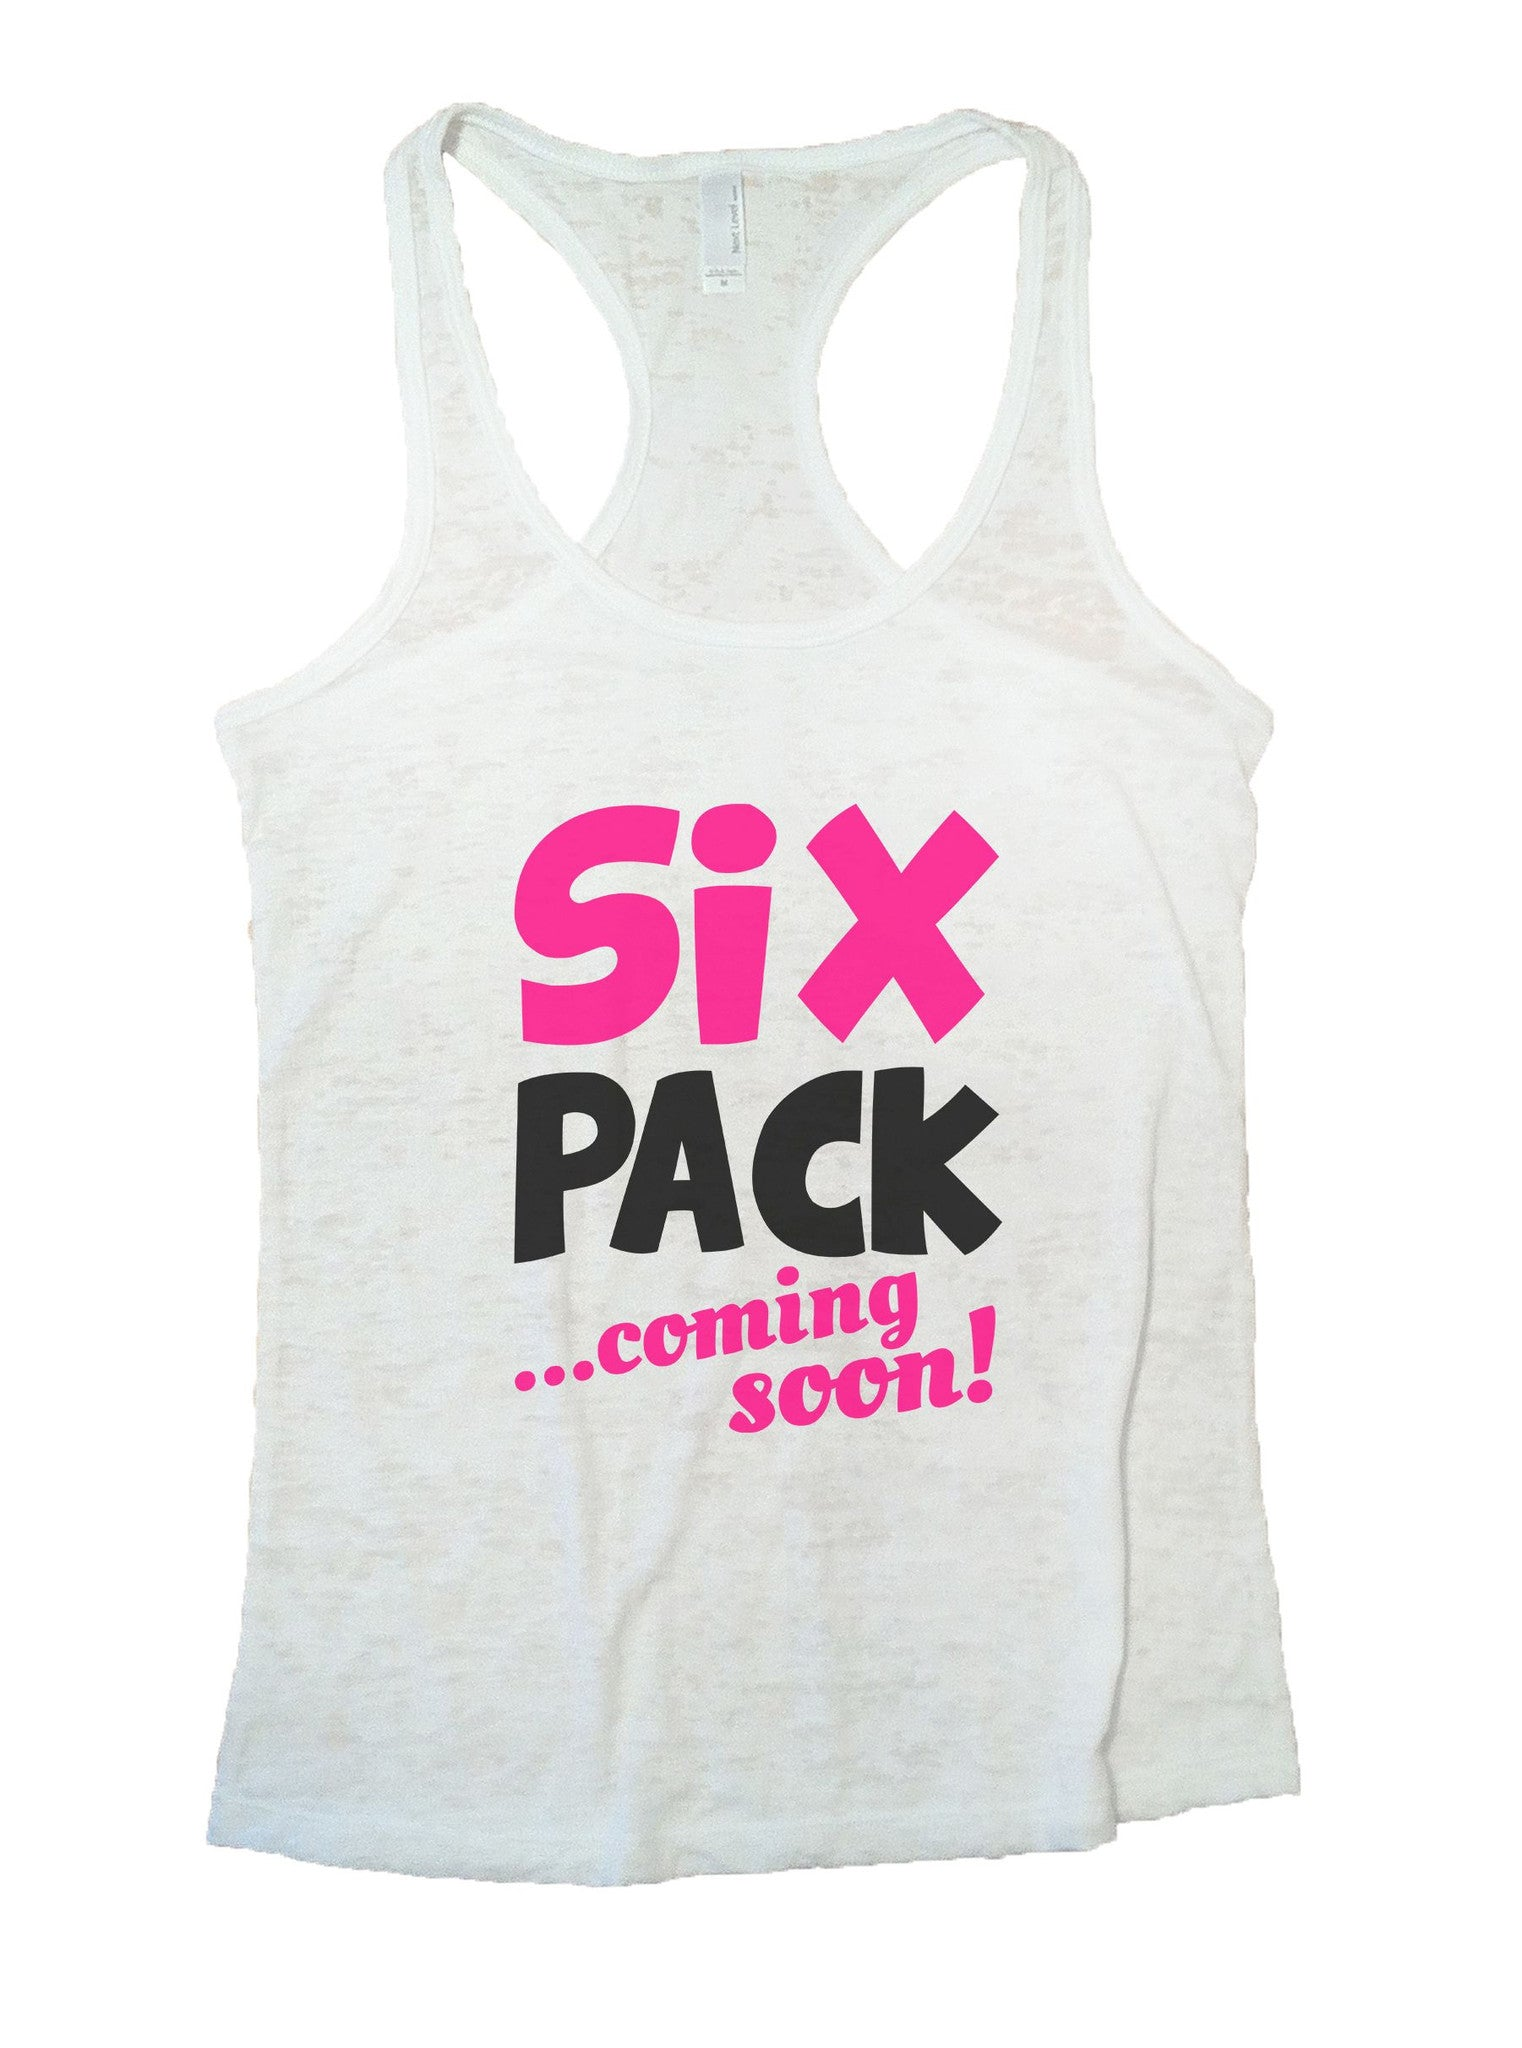 Six Pack Coming Soon Burnout Tank Top By BurnoutTankTops.com - 1038 - Funny Shirts Tank Tops Burnouts and Triblends  - 6